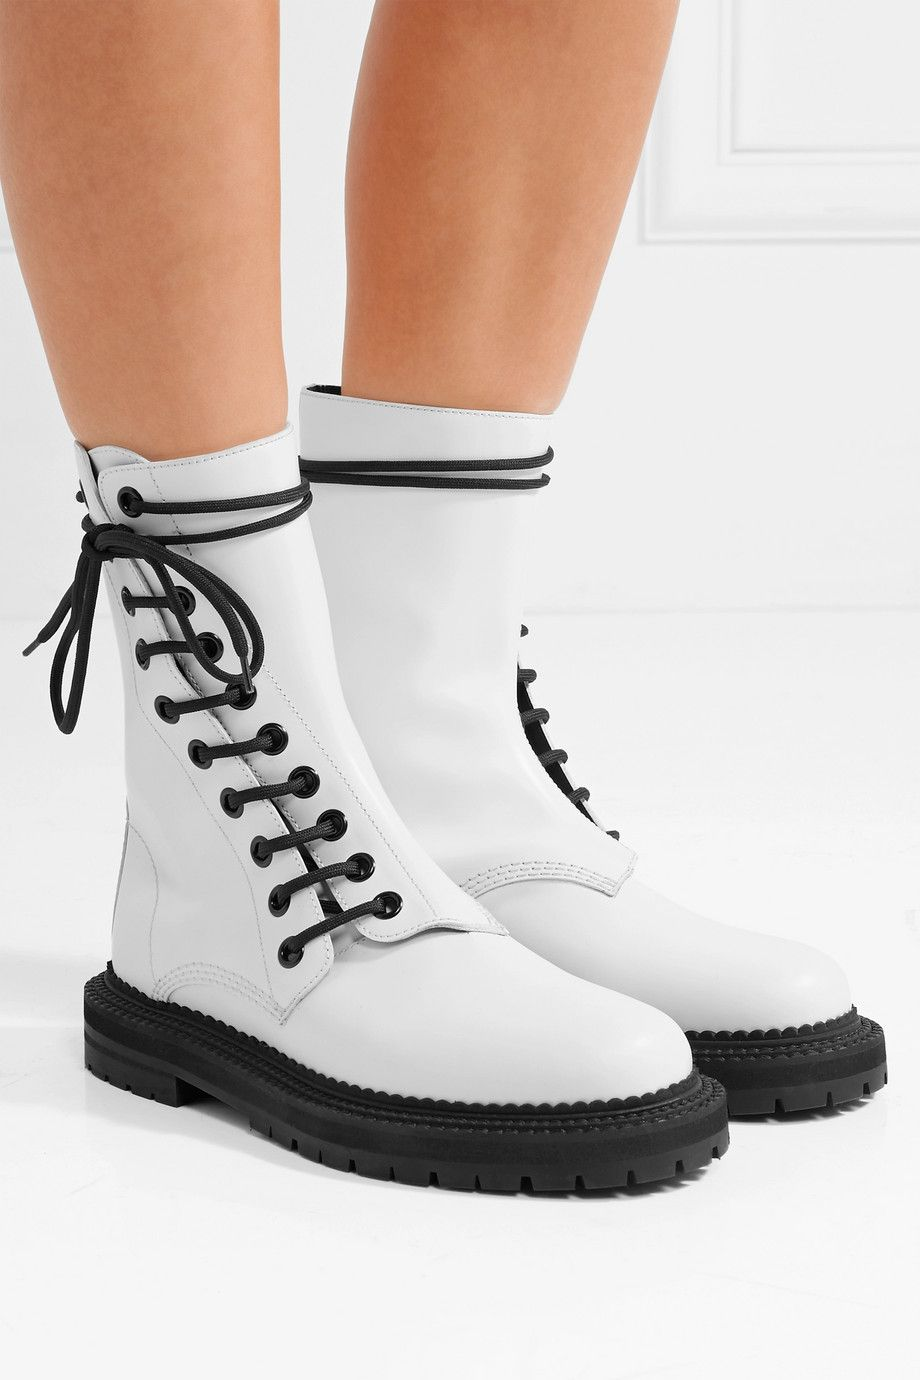 White Lace-up leather ankle boots